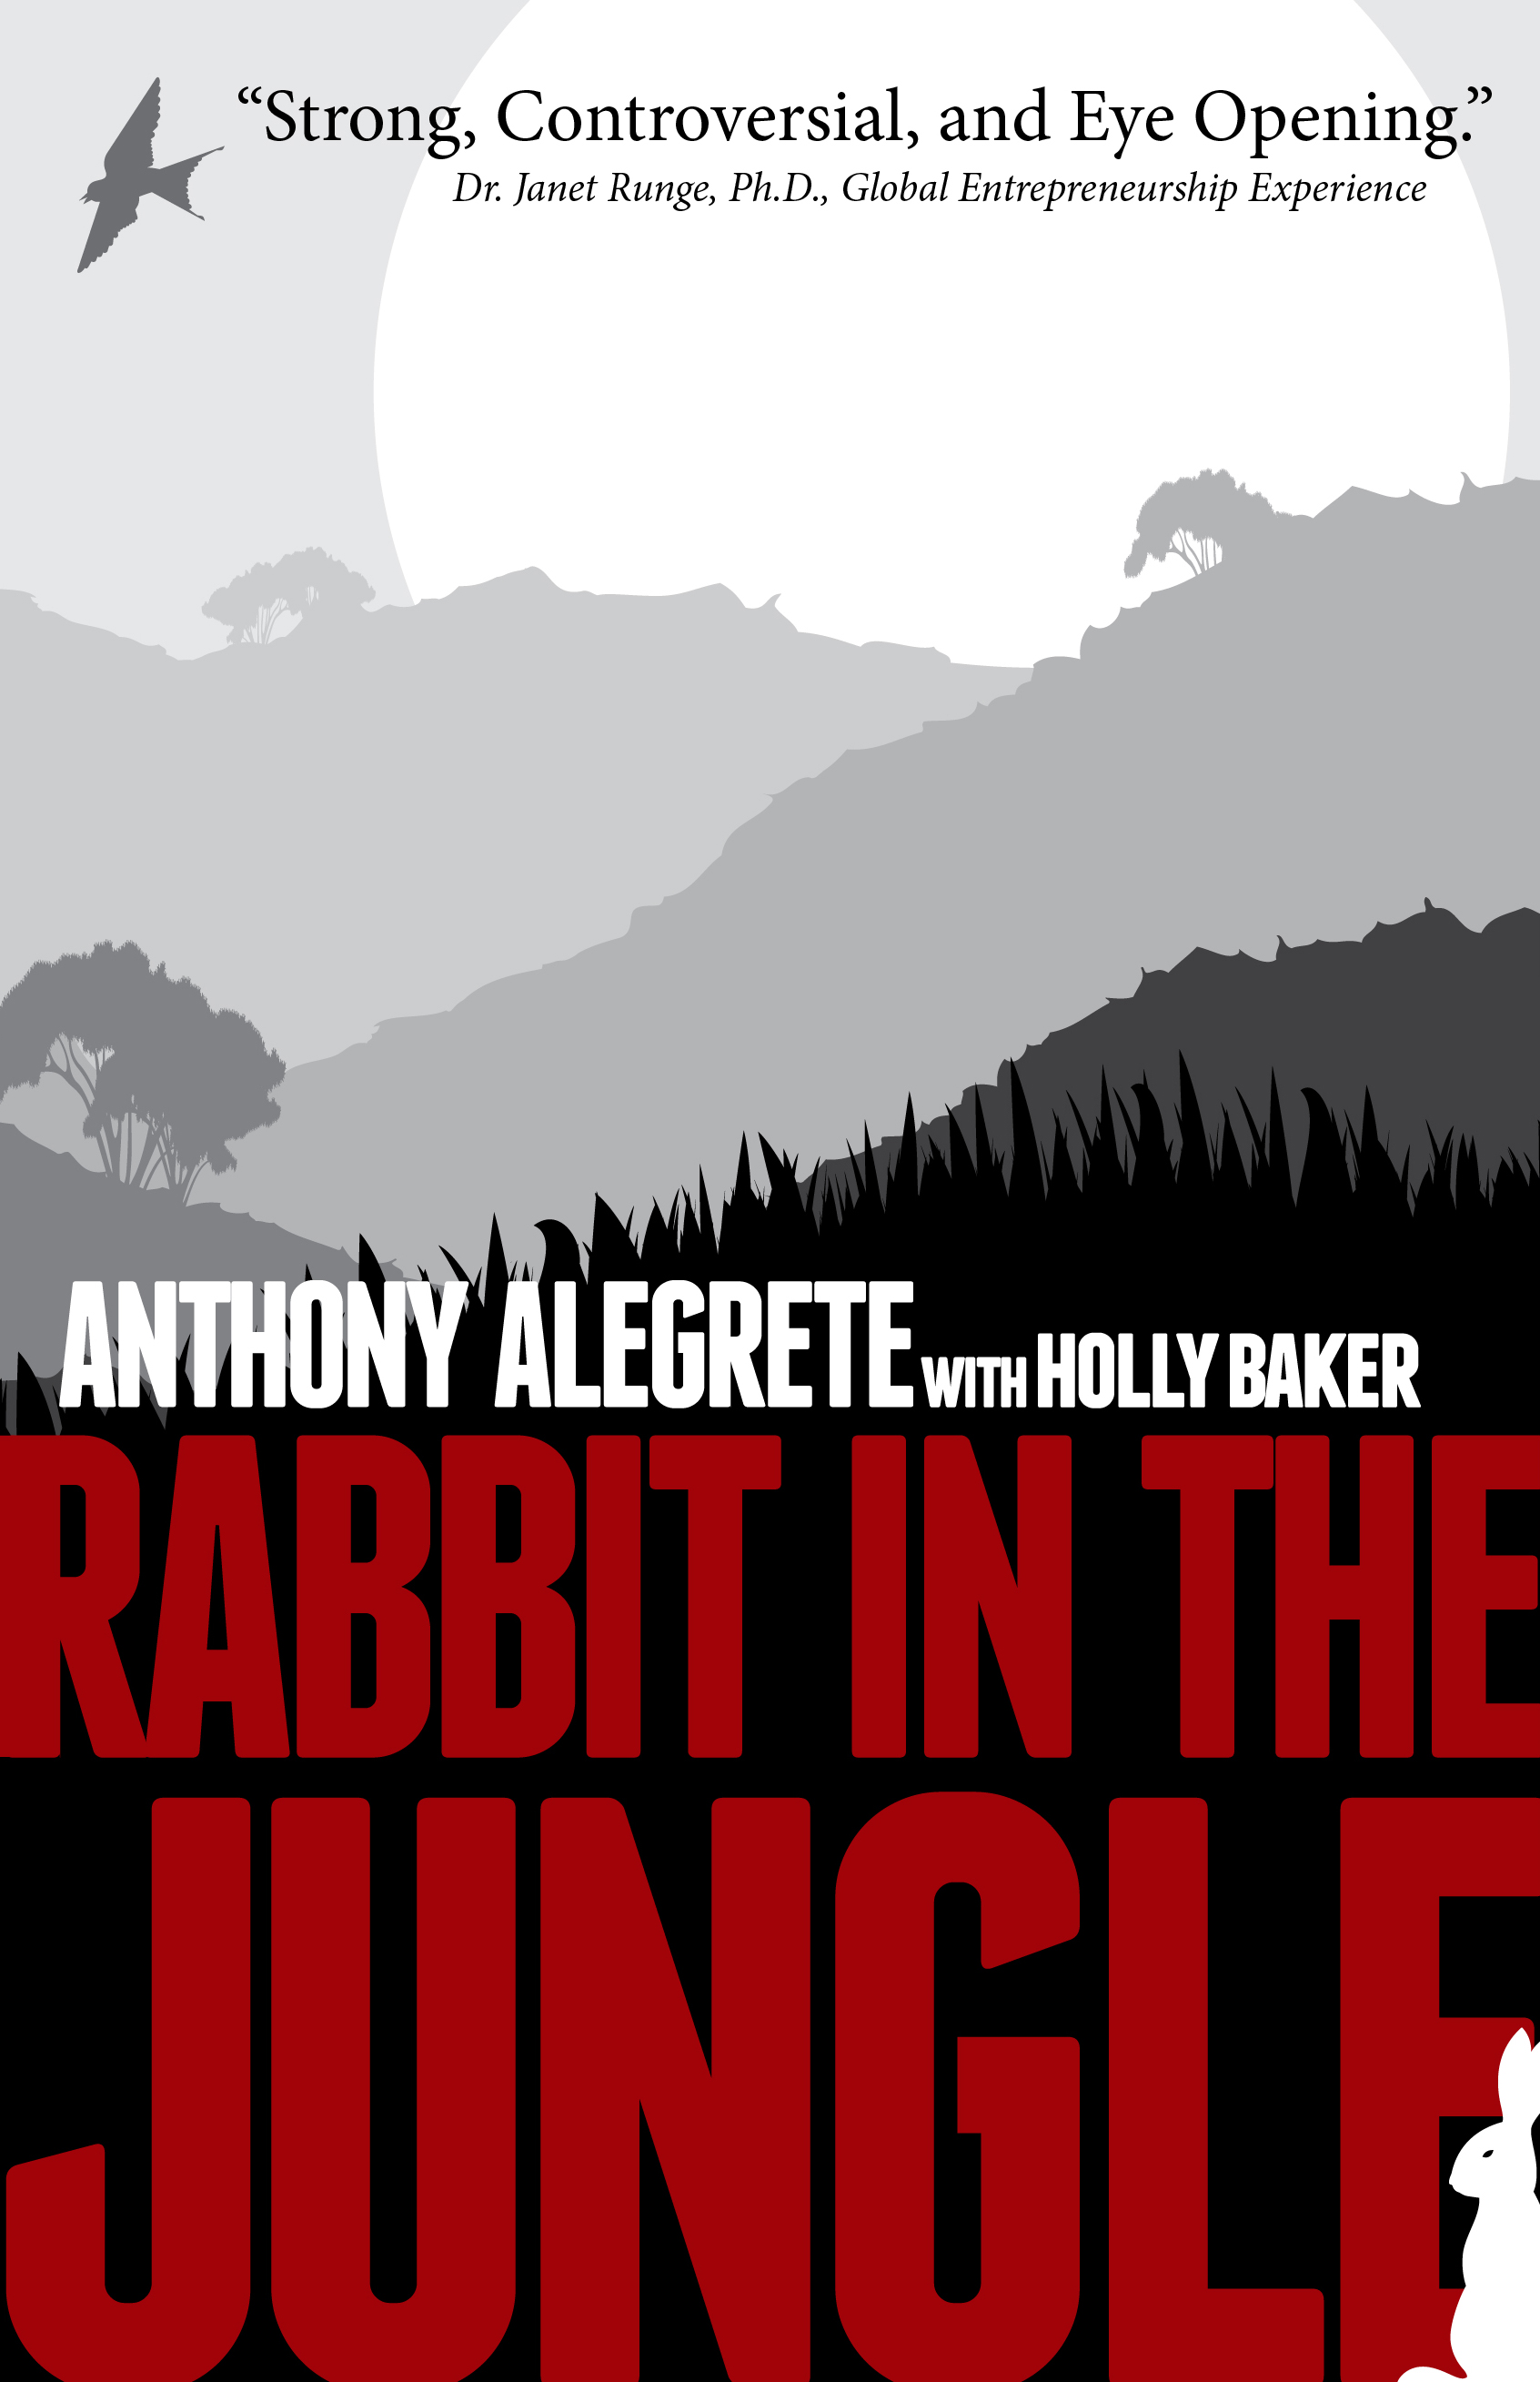 Rabbit-in-the-Jungle